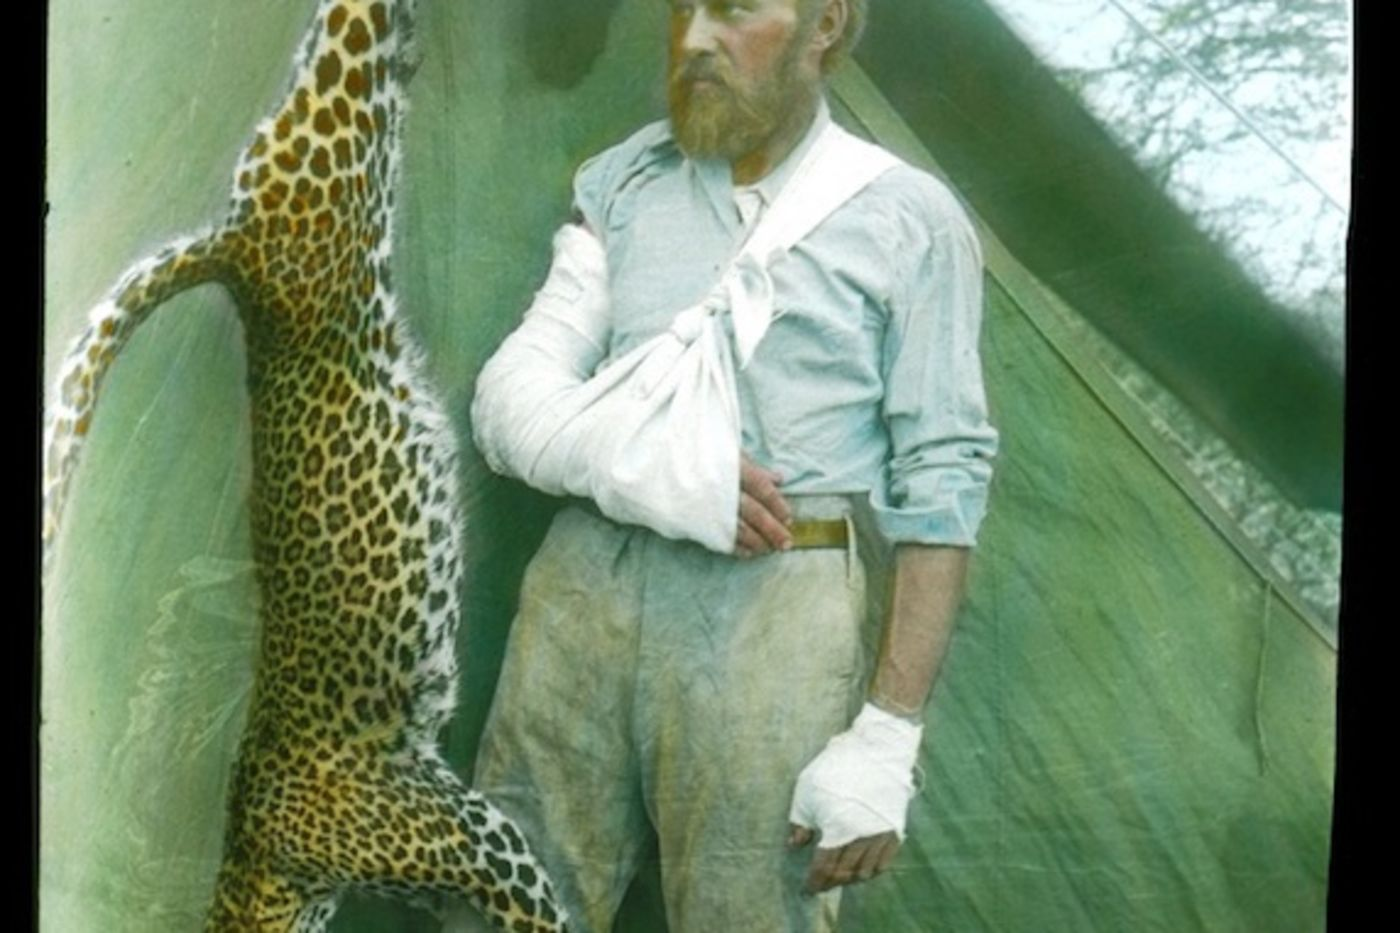 A colorized photo of a man with disheveled hair and arm in a sling, looking at a dead leopard hanging upside down.